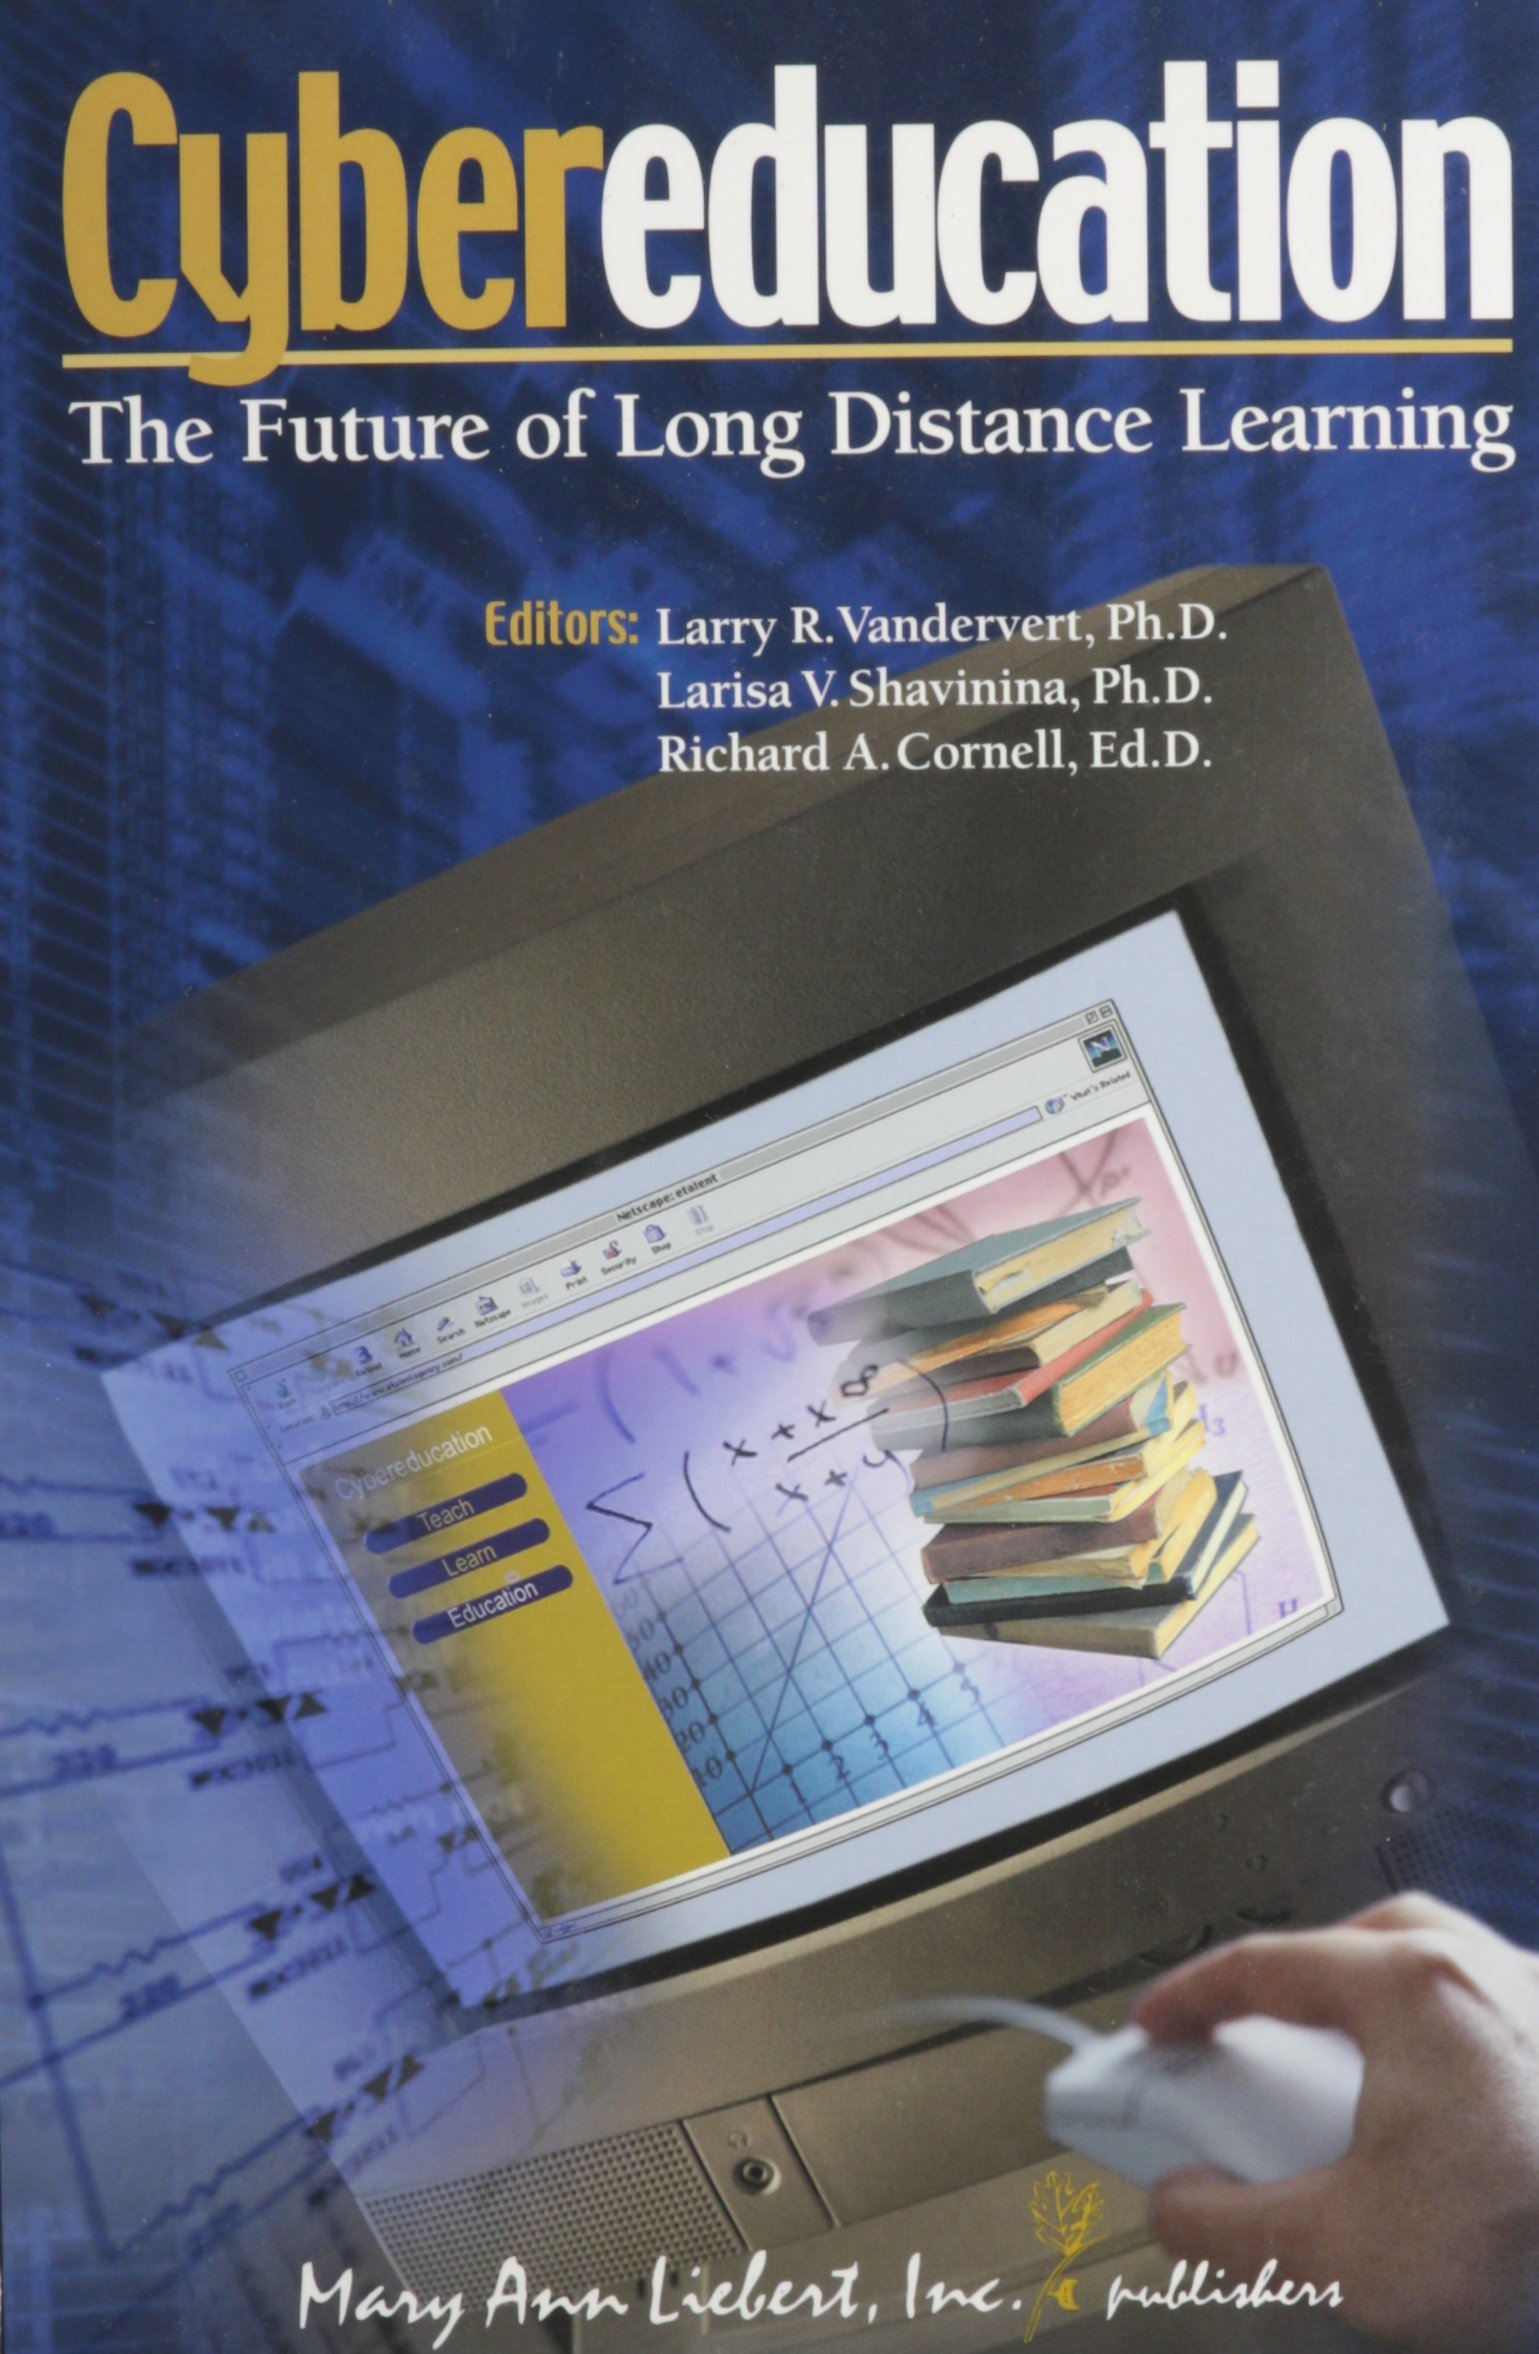 Cybereducation: The Future of Long-Distance Learning